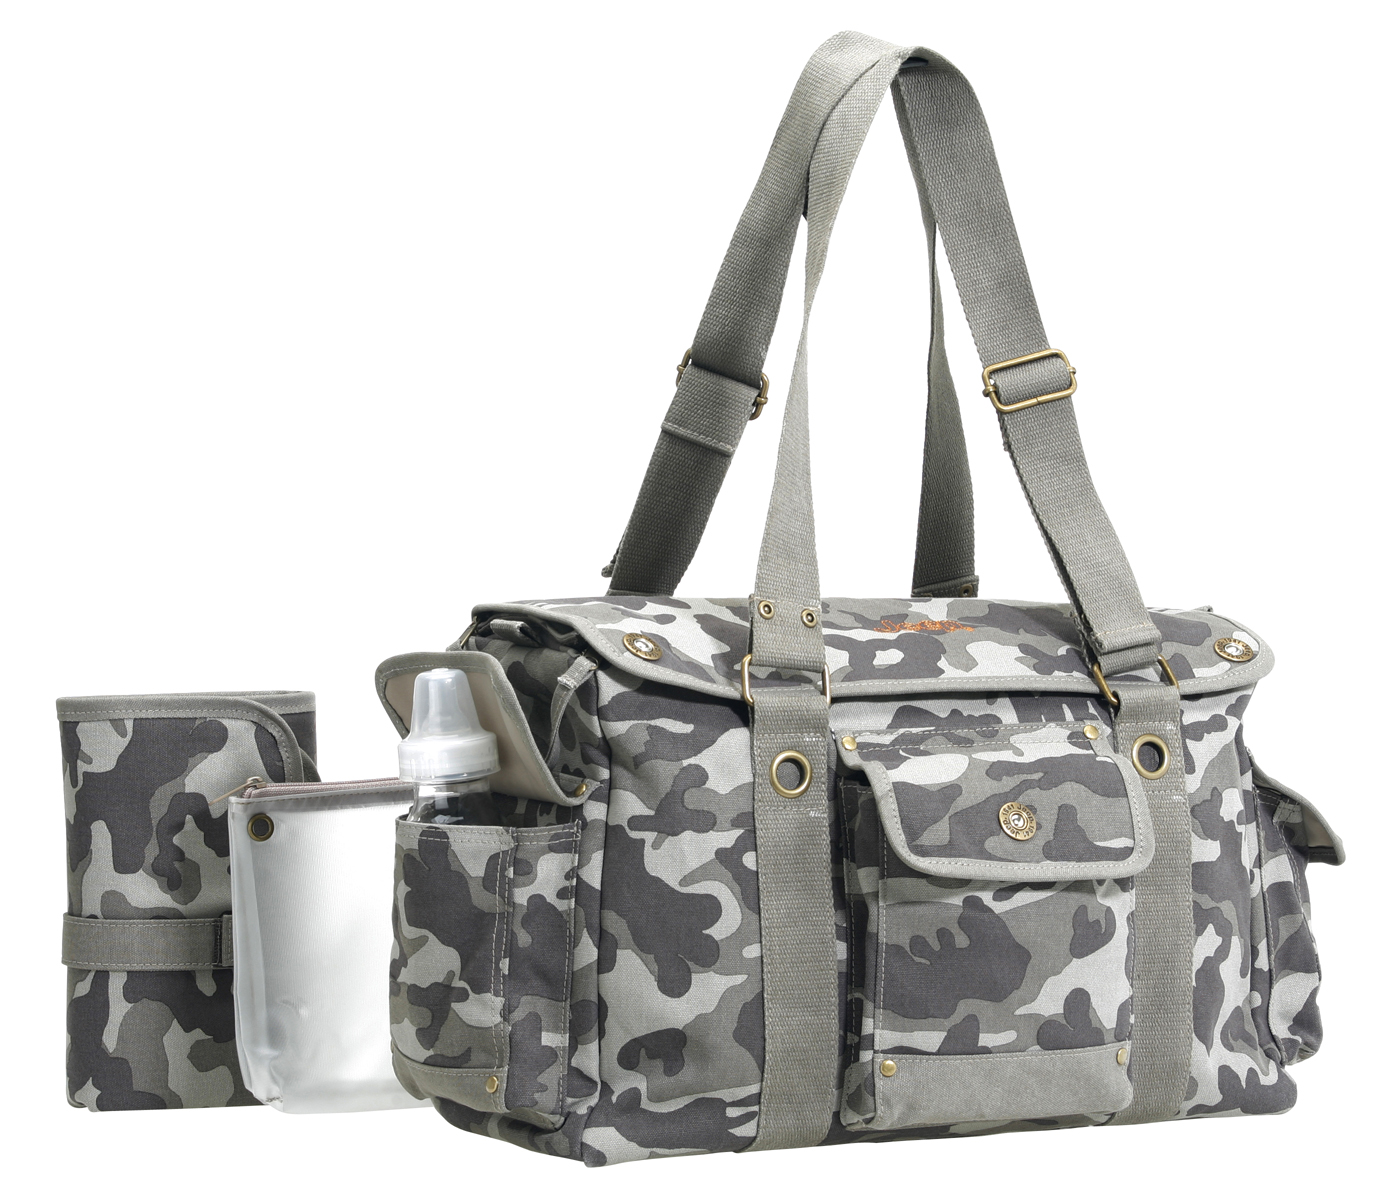 A Manly Diaper Bag Yay Or Nay